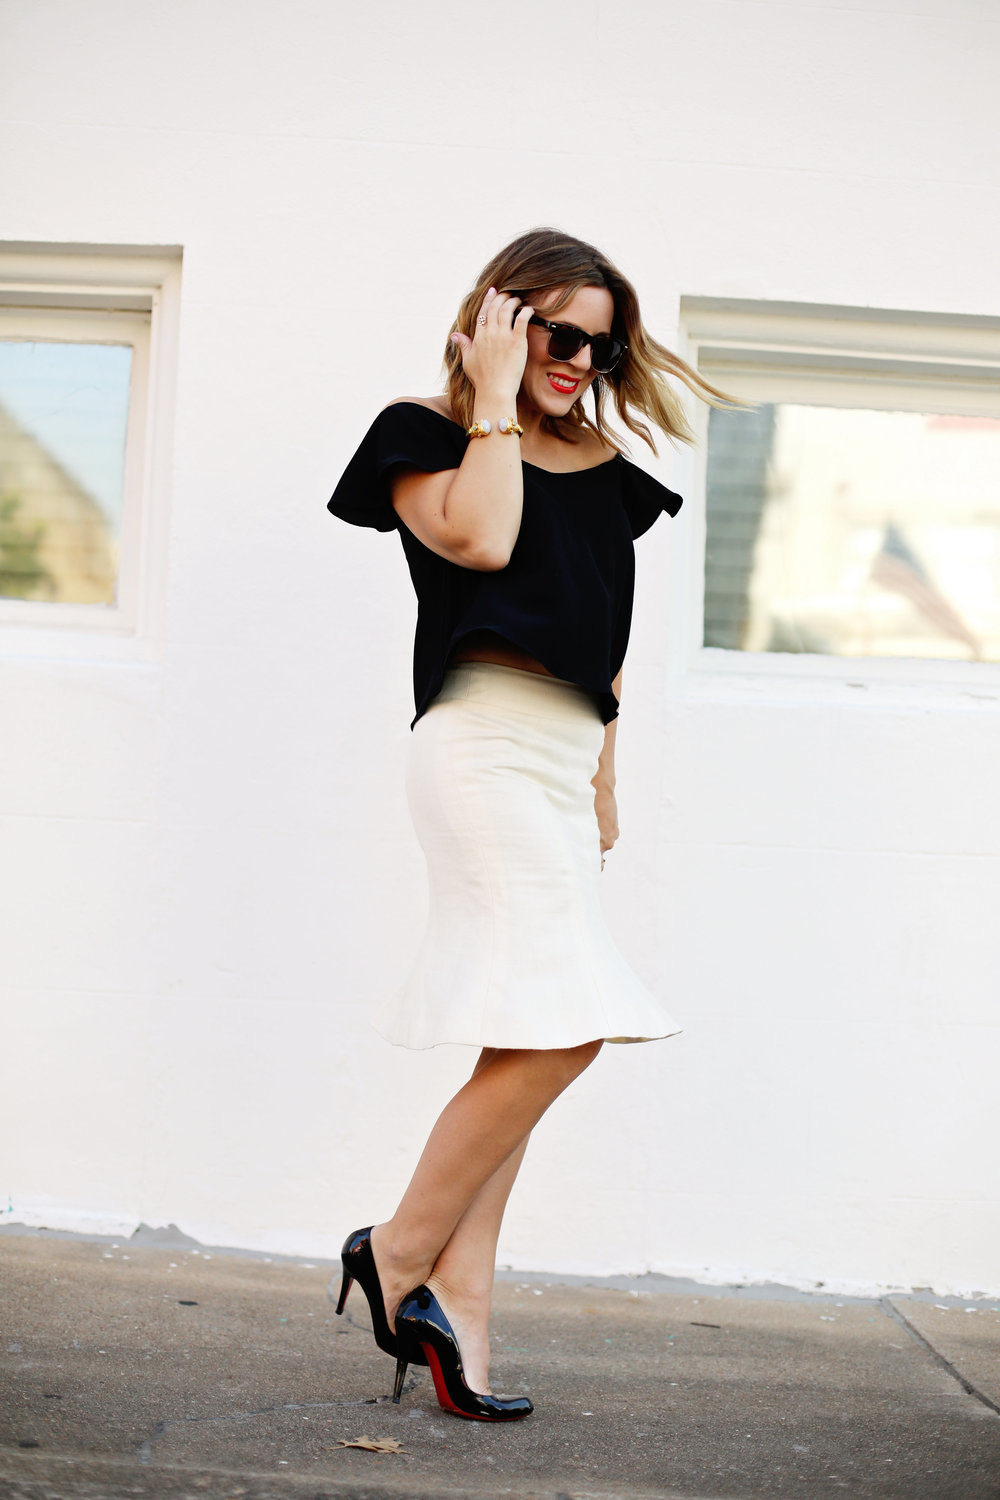 louboutin and chanel skirt.jpg